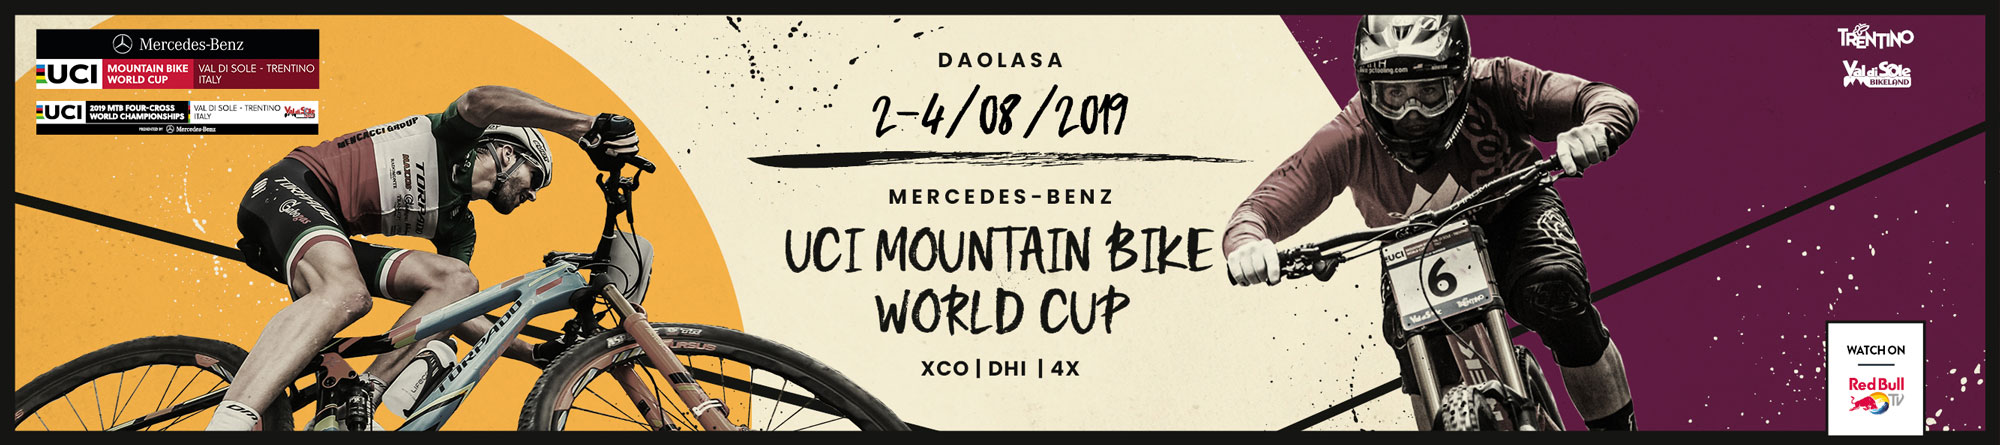 XCCXCC Race - UCI MTB WORLD CUP 2019